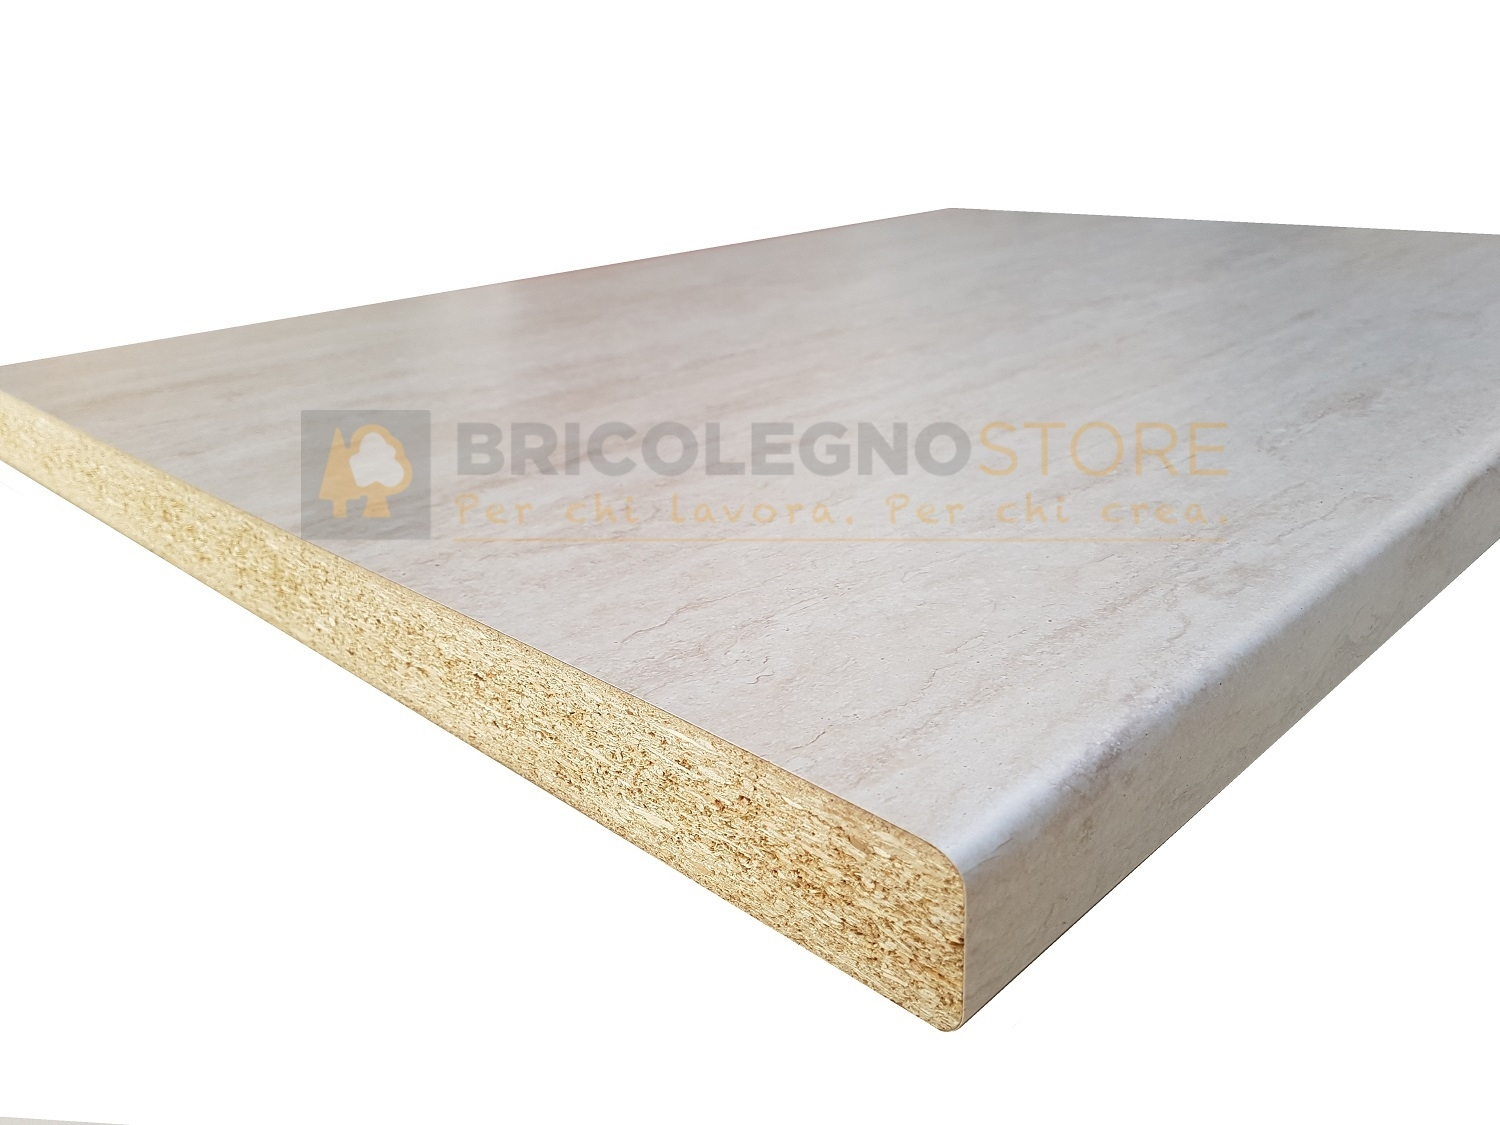 Top per cucina in Truciolare Stratificato HPL finitura TRAVERTINO mm 40 x  600 x 2100